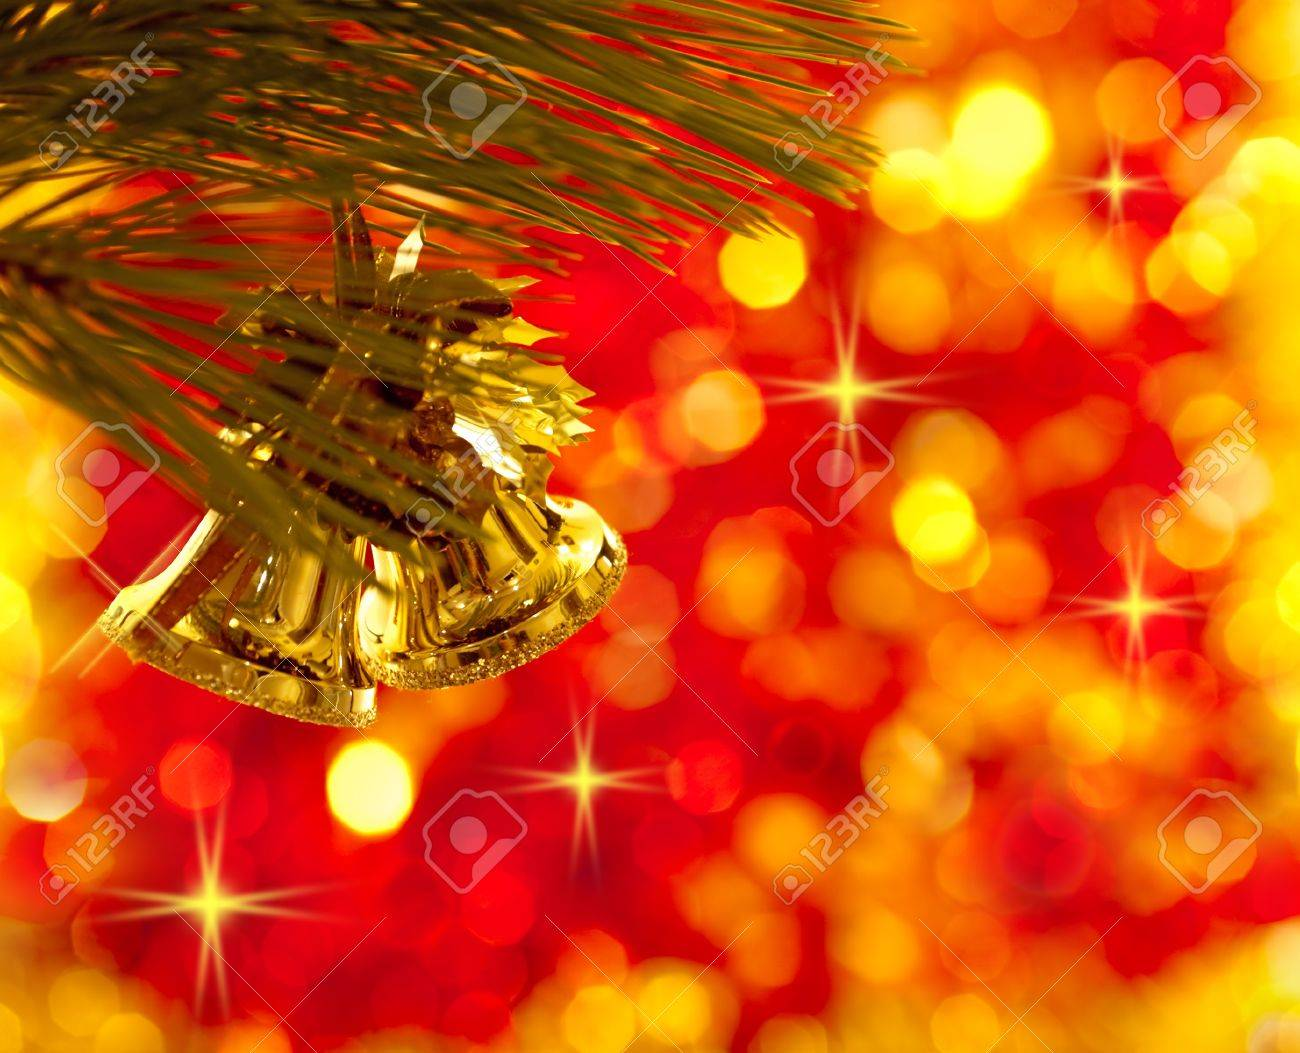 Gold Christmas Tree Decorations On Lights Red Background